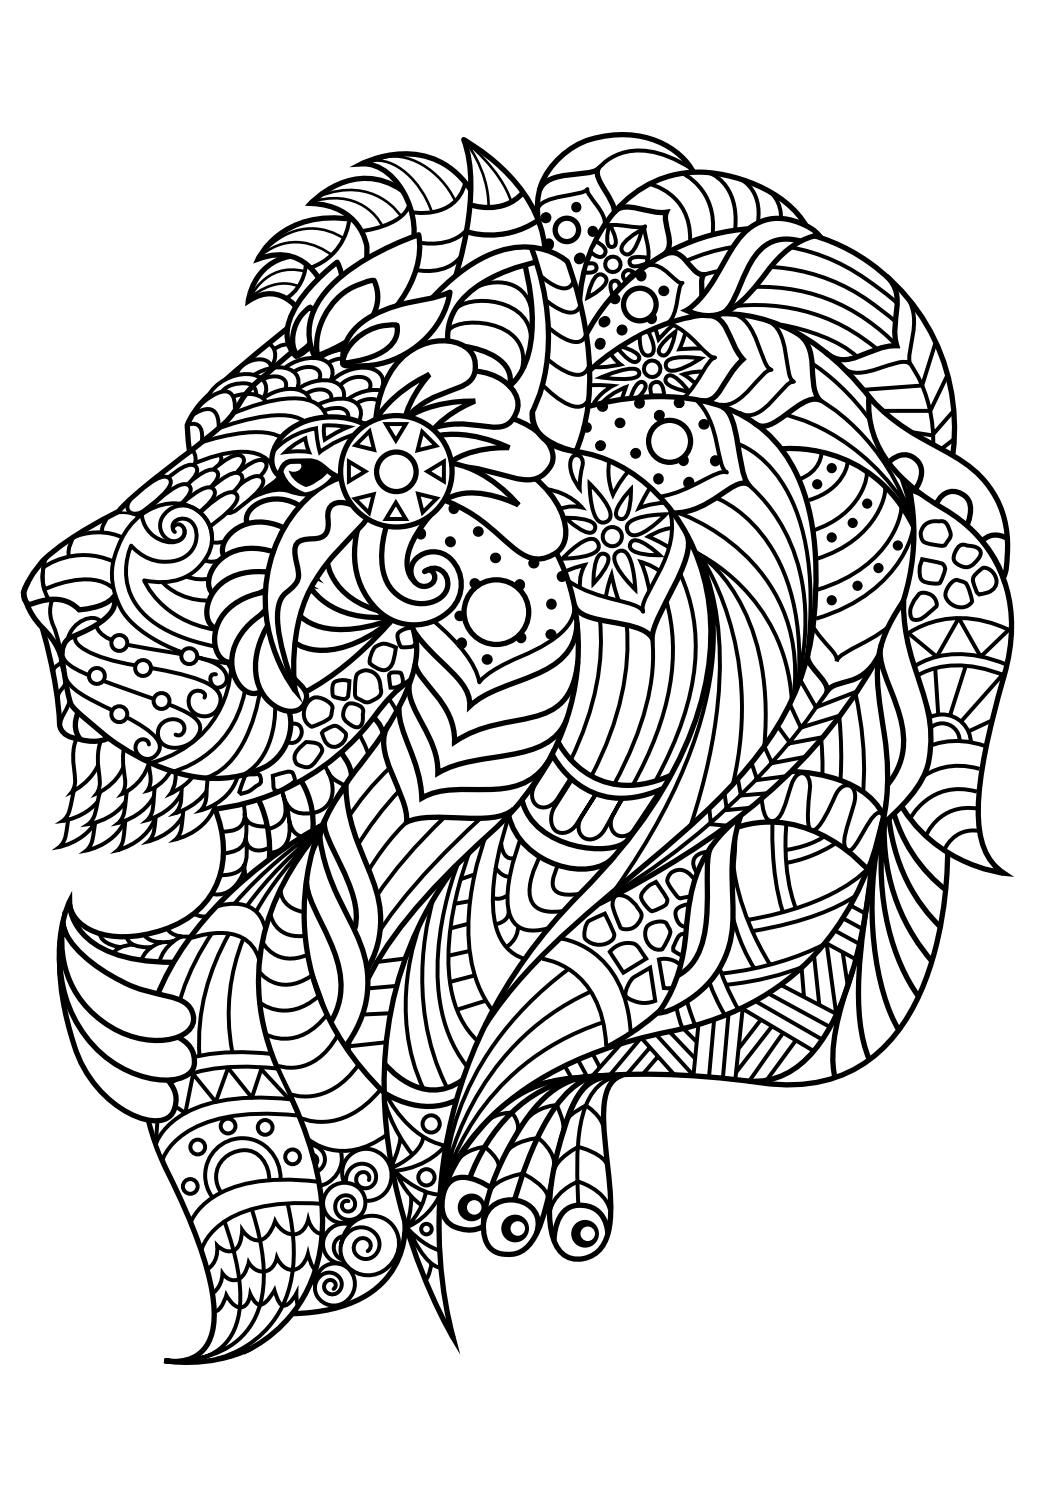 Animal coloring pages pdf Coloring